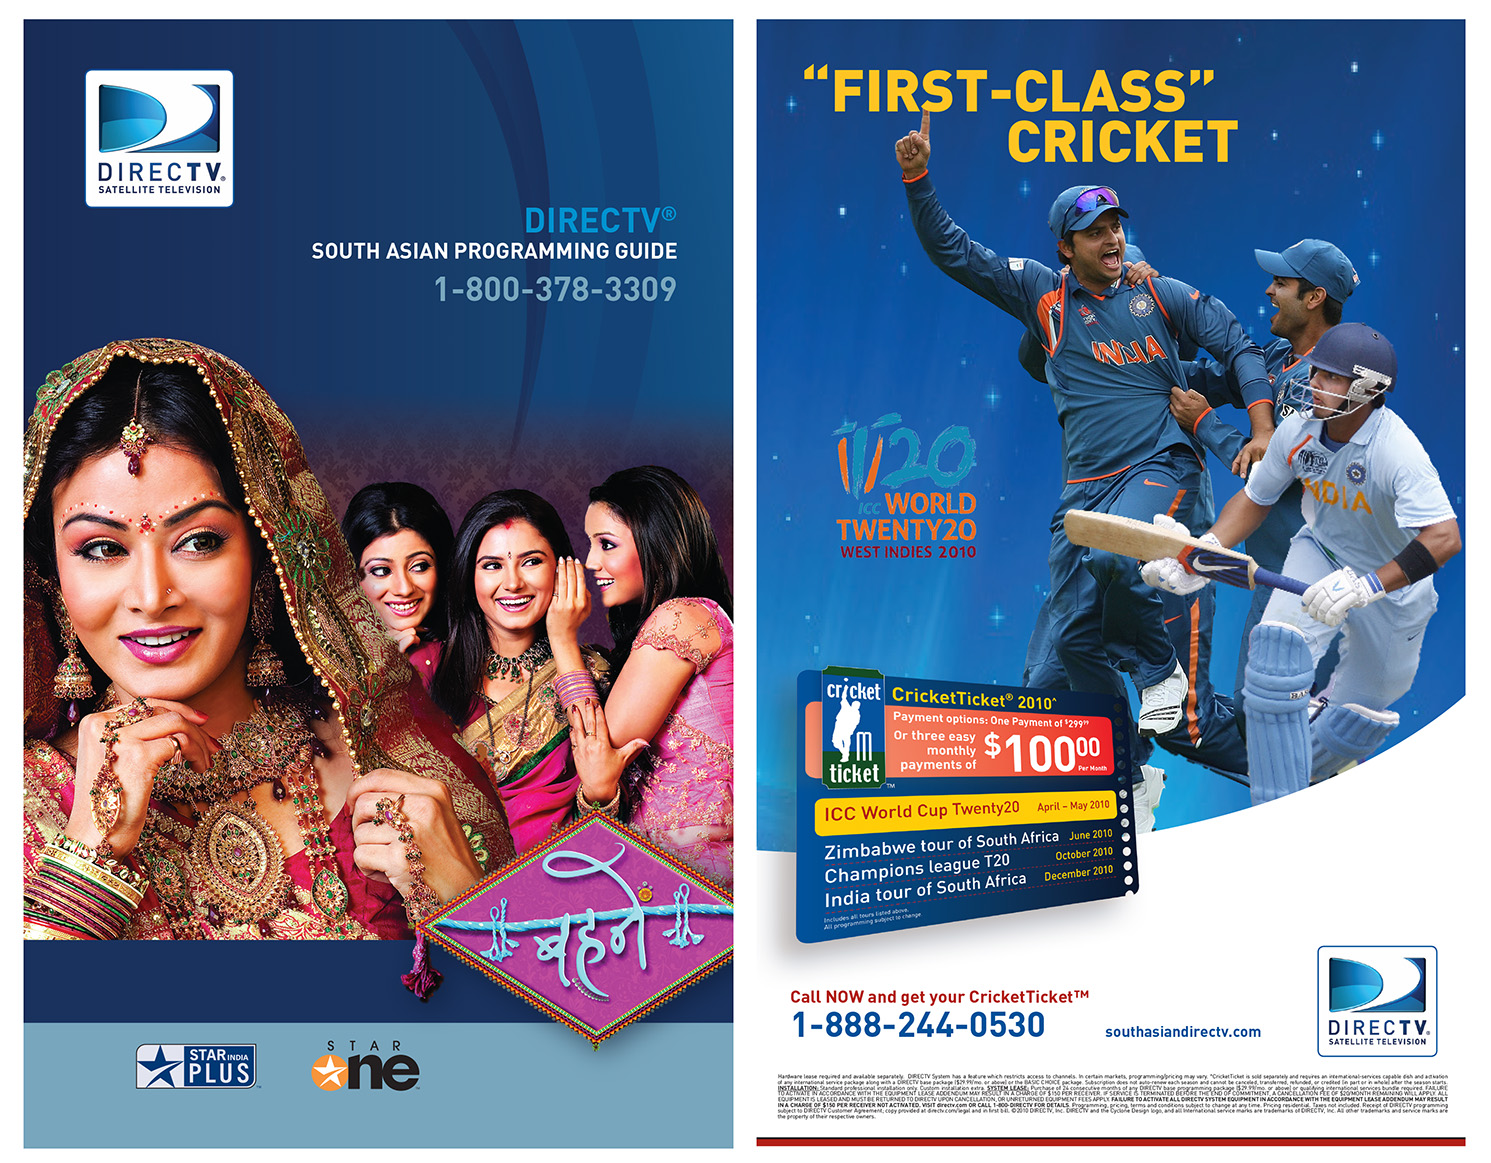 Direct tv south asian